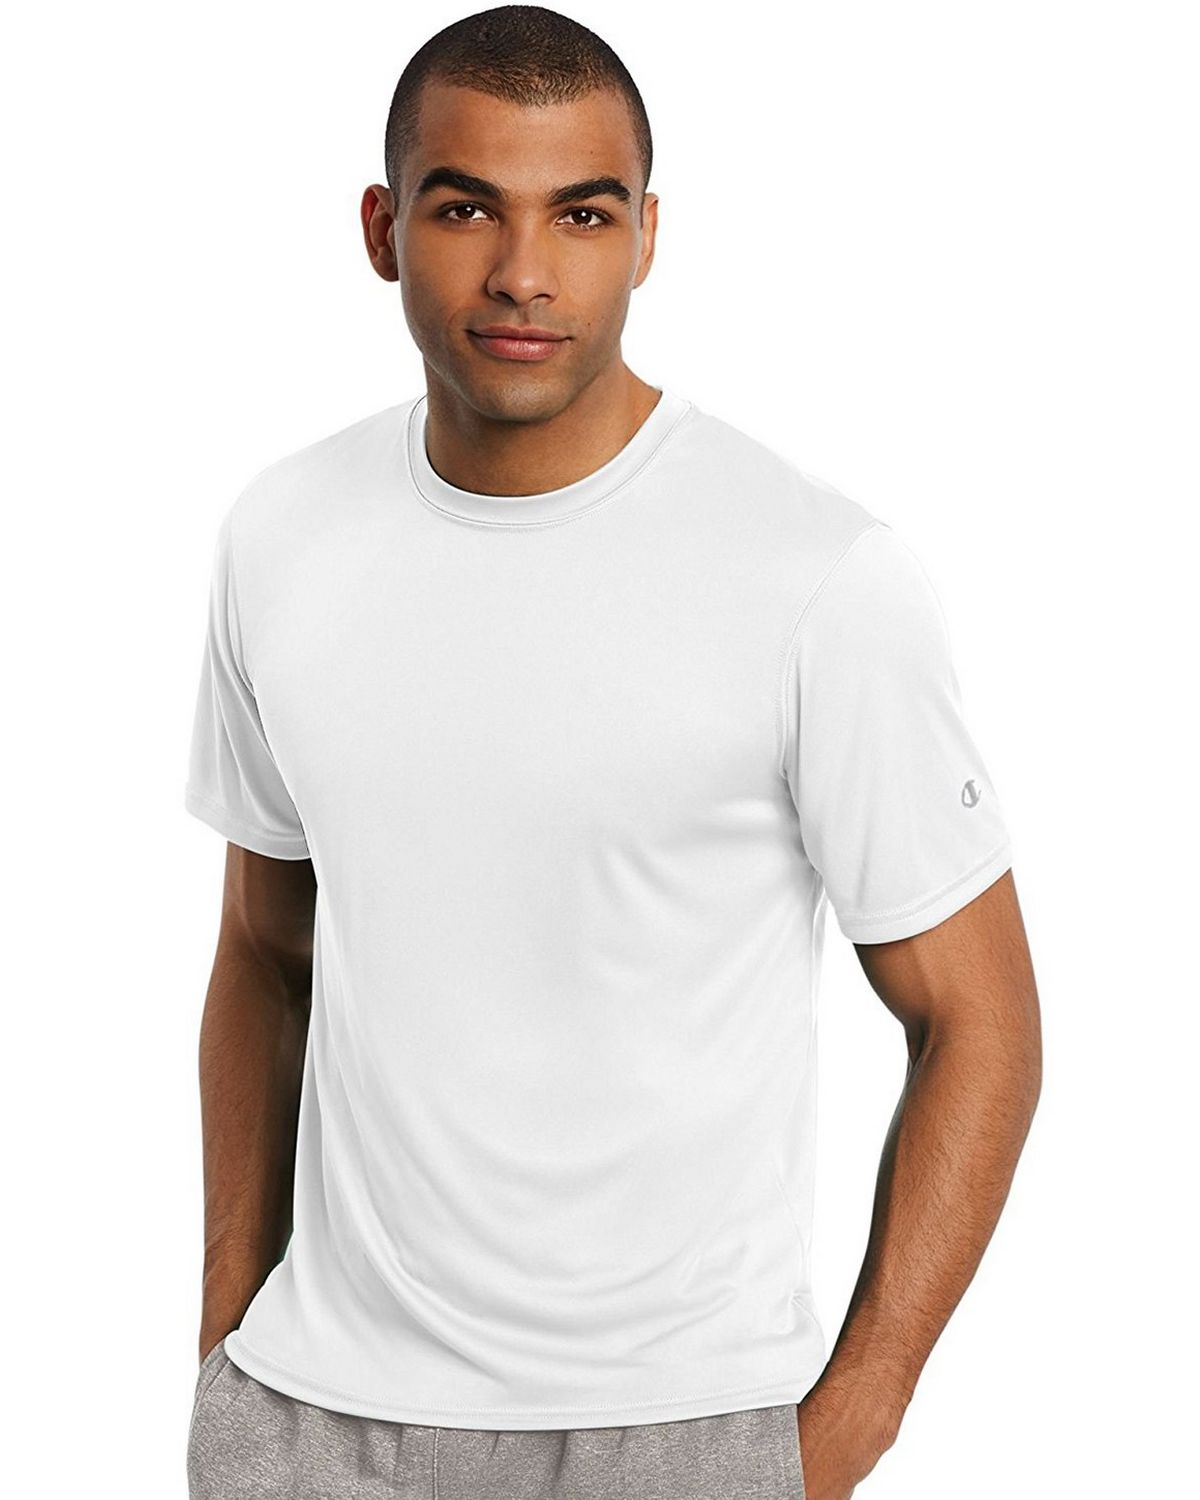 Champion T0022 Core Training Tee - White - L T0022